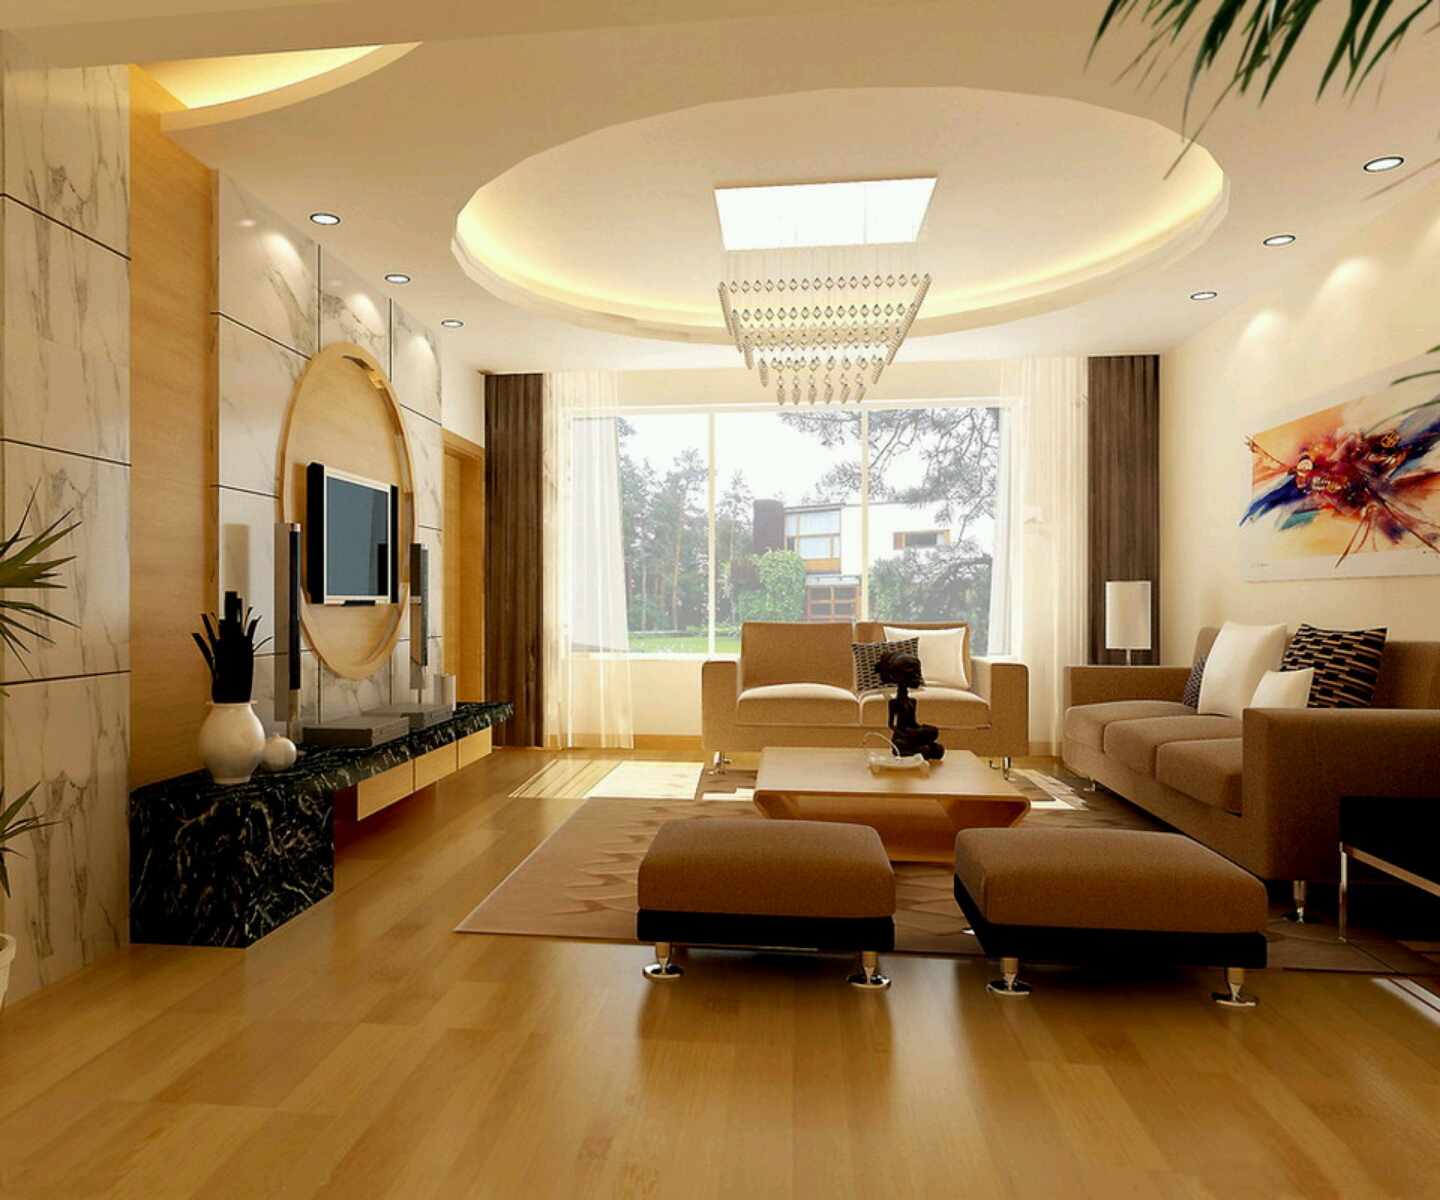 Modern interior decoration living rooms ceiling designs Living room makeover ideas